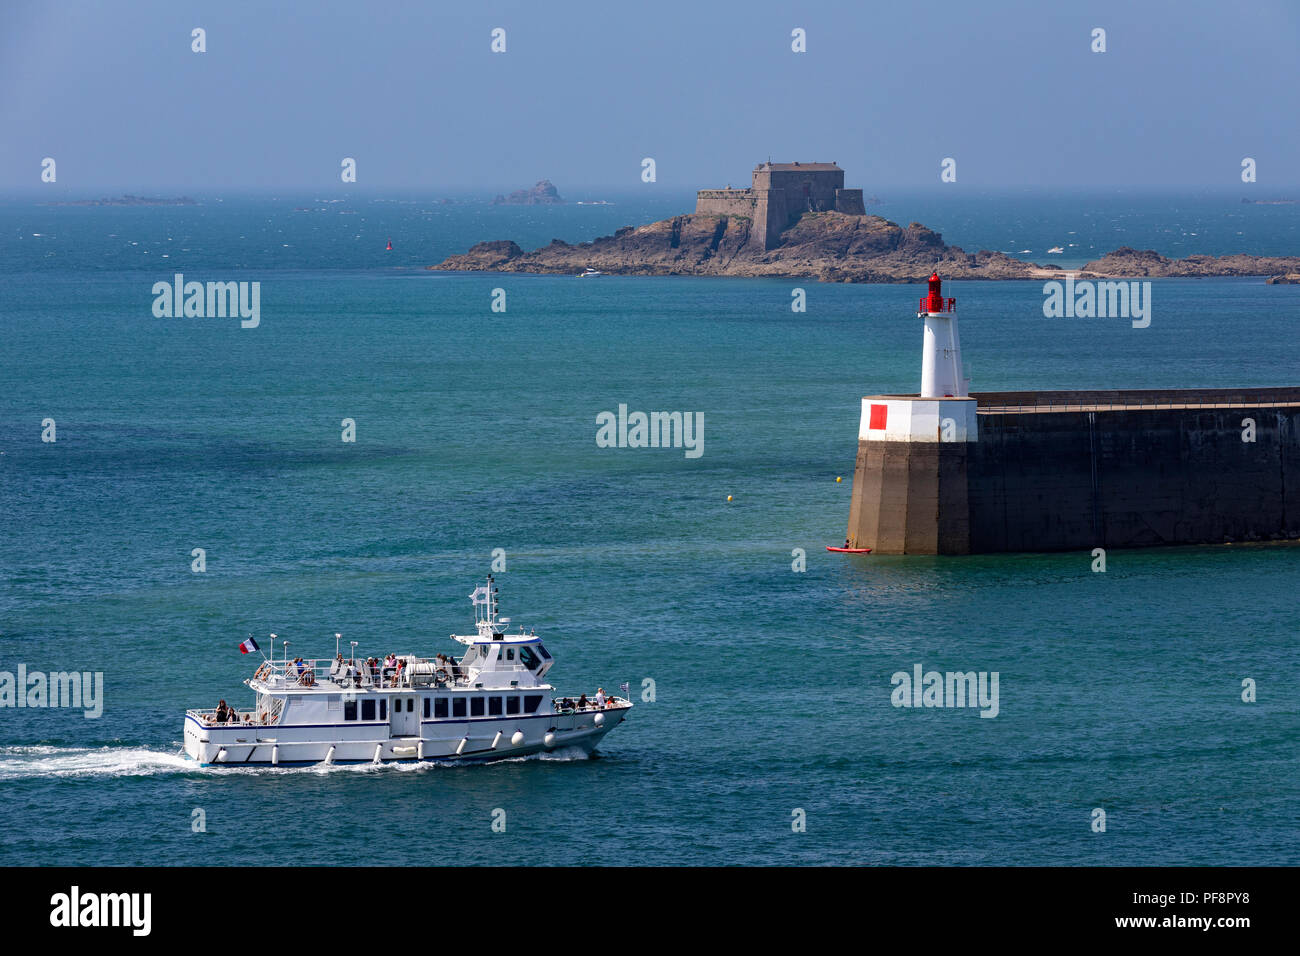 Tour boat entering the harbor in the port of Saint Malo on the Brittany coast of northwest France. The island is Le Petit Be and the fortress dates fr - Stock Image